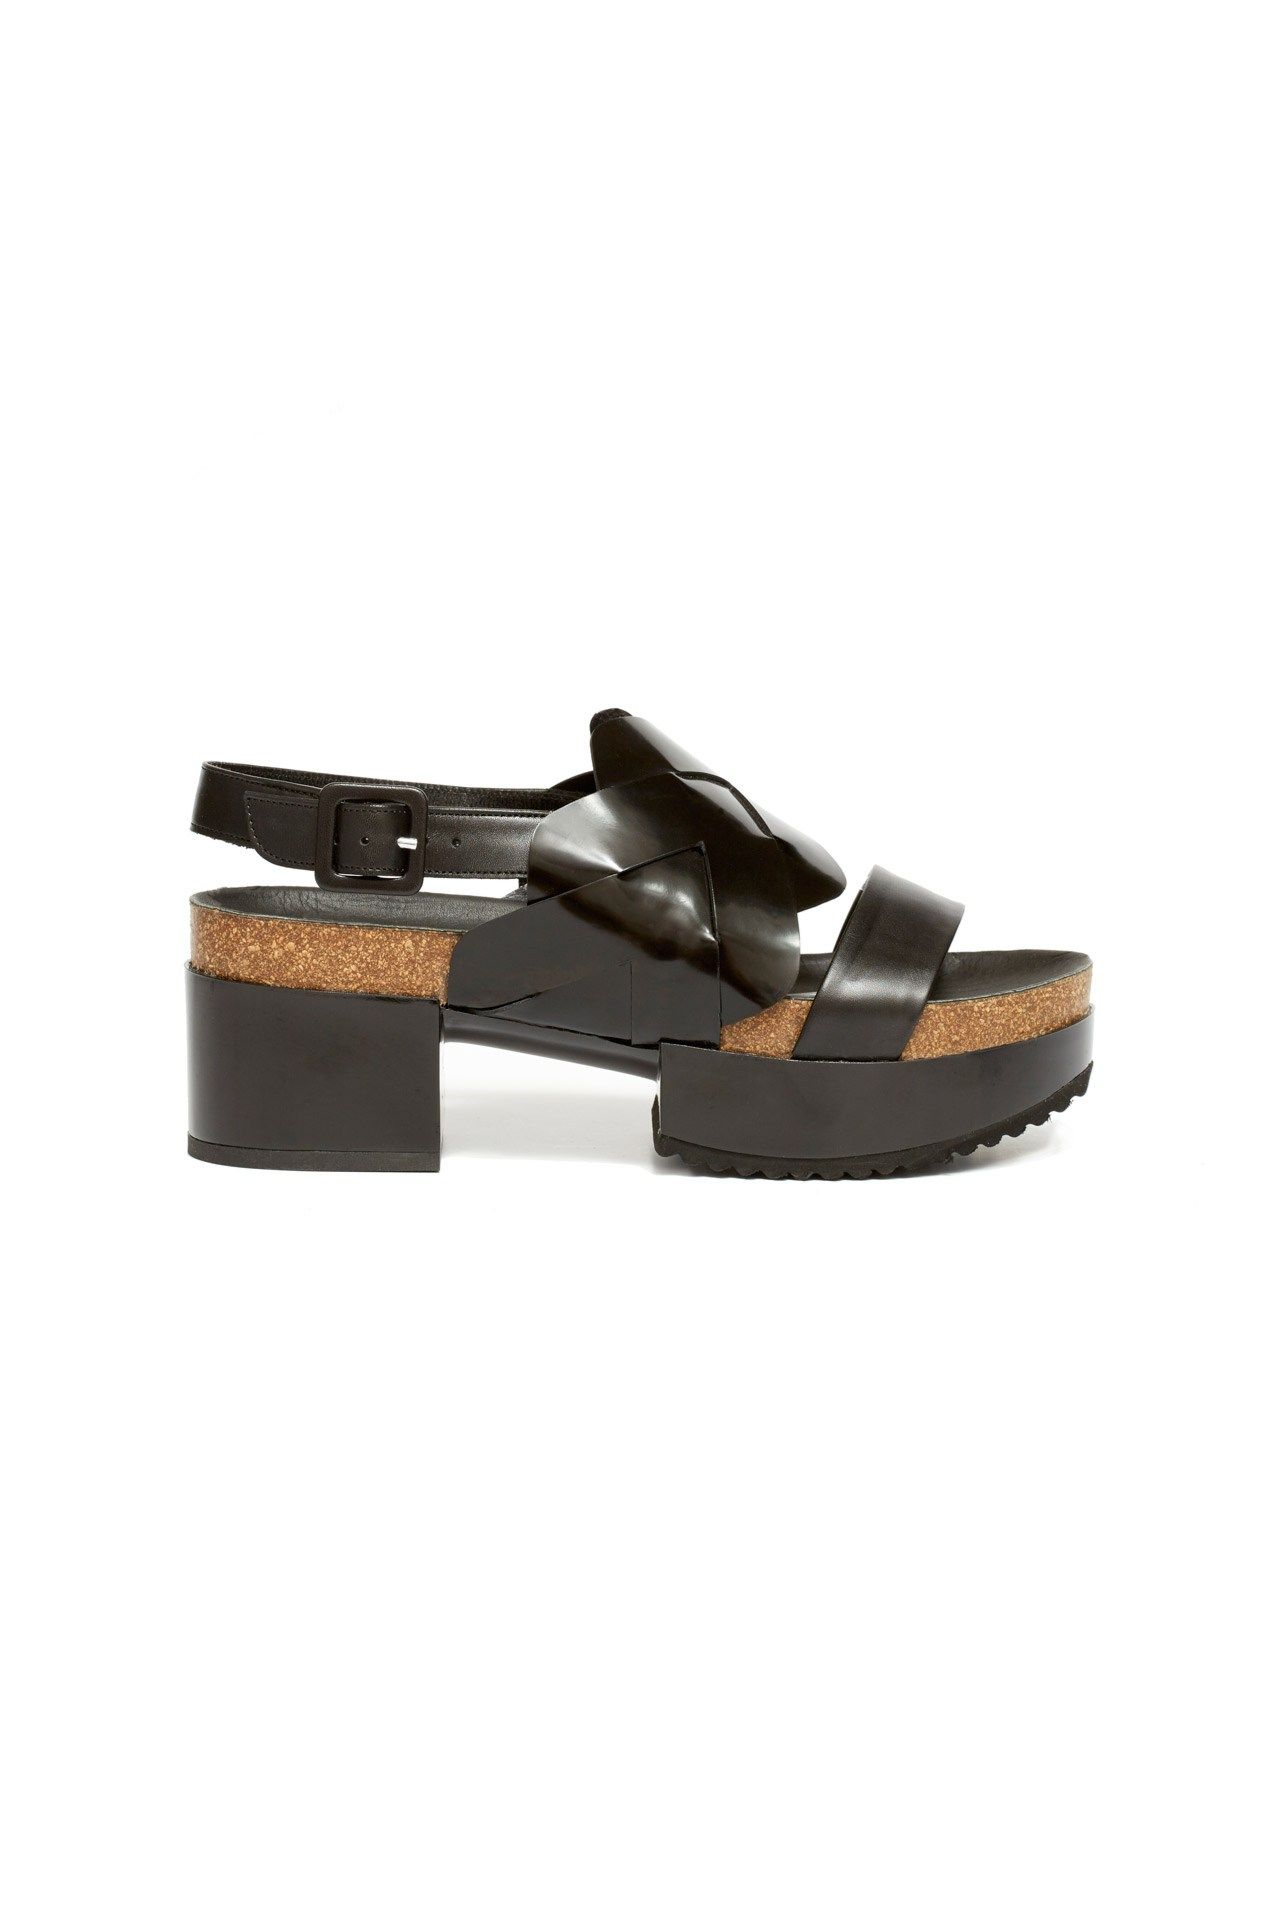 www.vogue.co.uk/news/favourites-of-vogue/2015/04/spring-and-summer-sandals/gallery/1395046